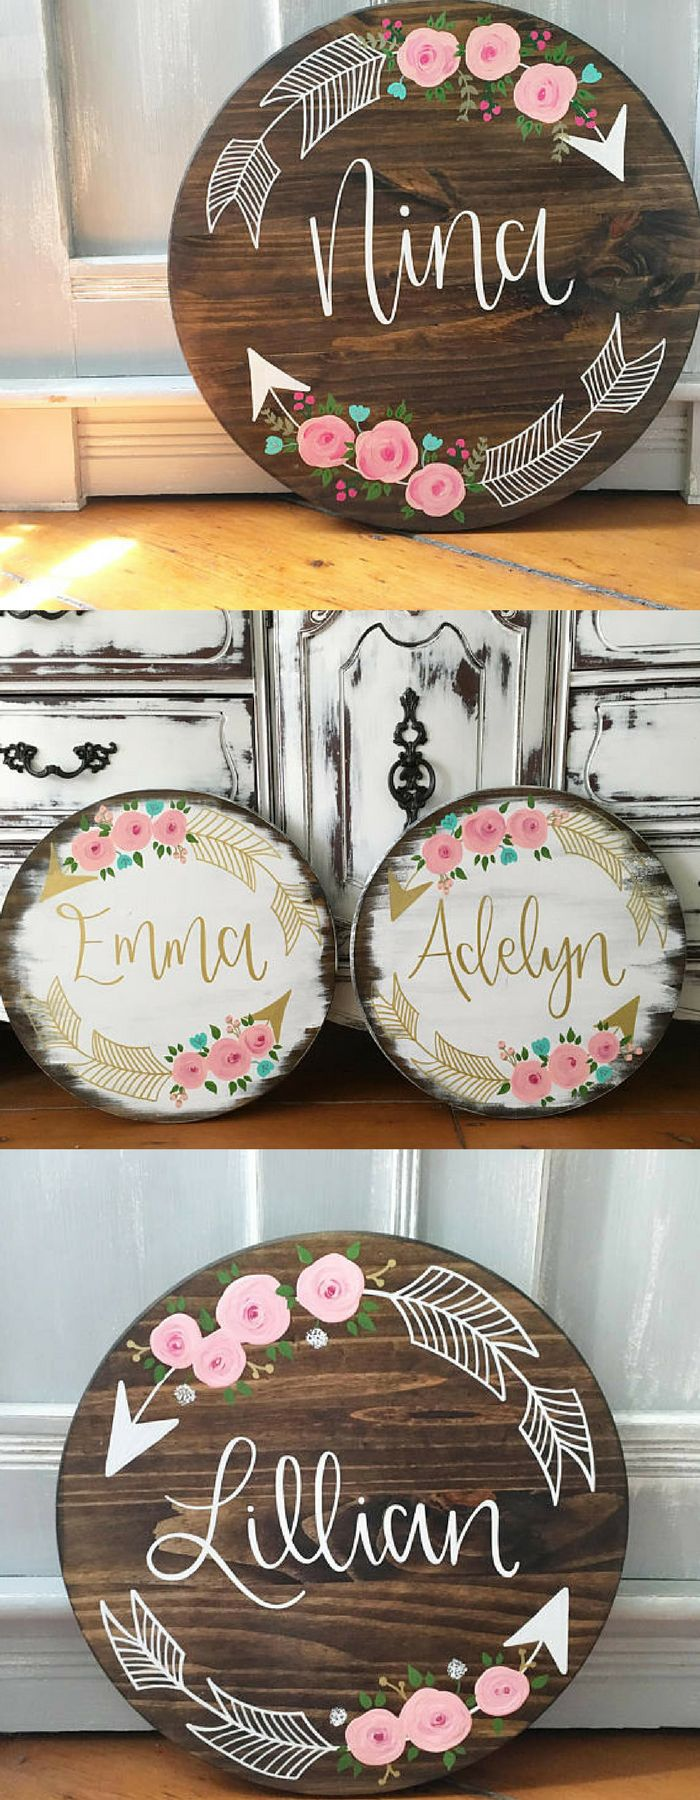 BEAUTIFUL Custom Made Name Signs With Floral Arrows! Great For A Nursery Or Little Girls Room! #affiliatelink #nursery #custom #personalized #girlsroomdecor